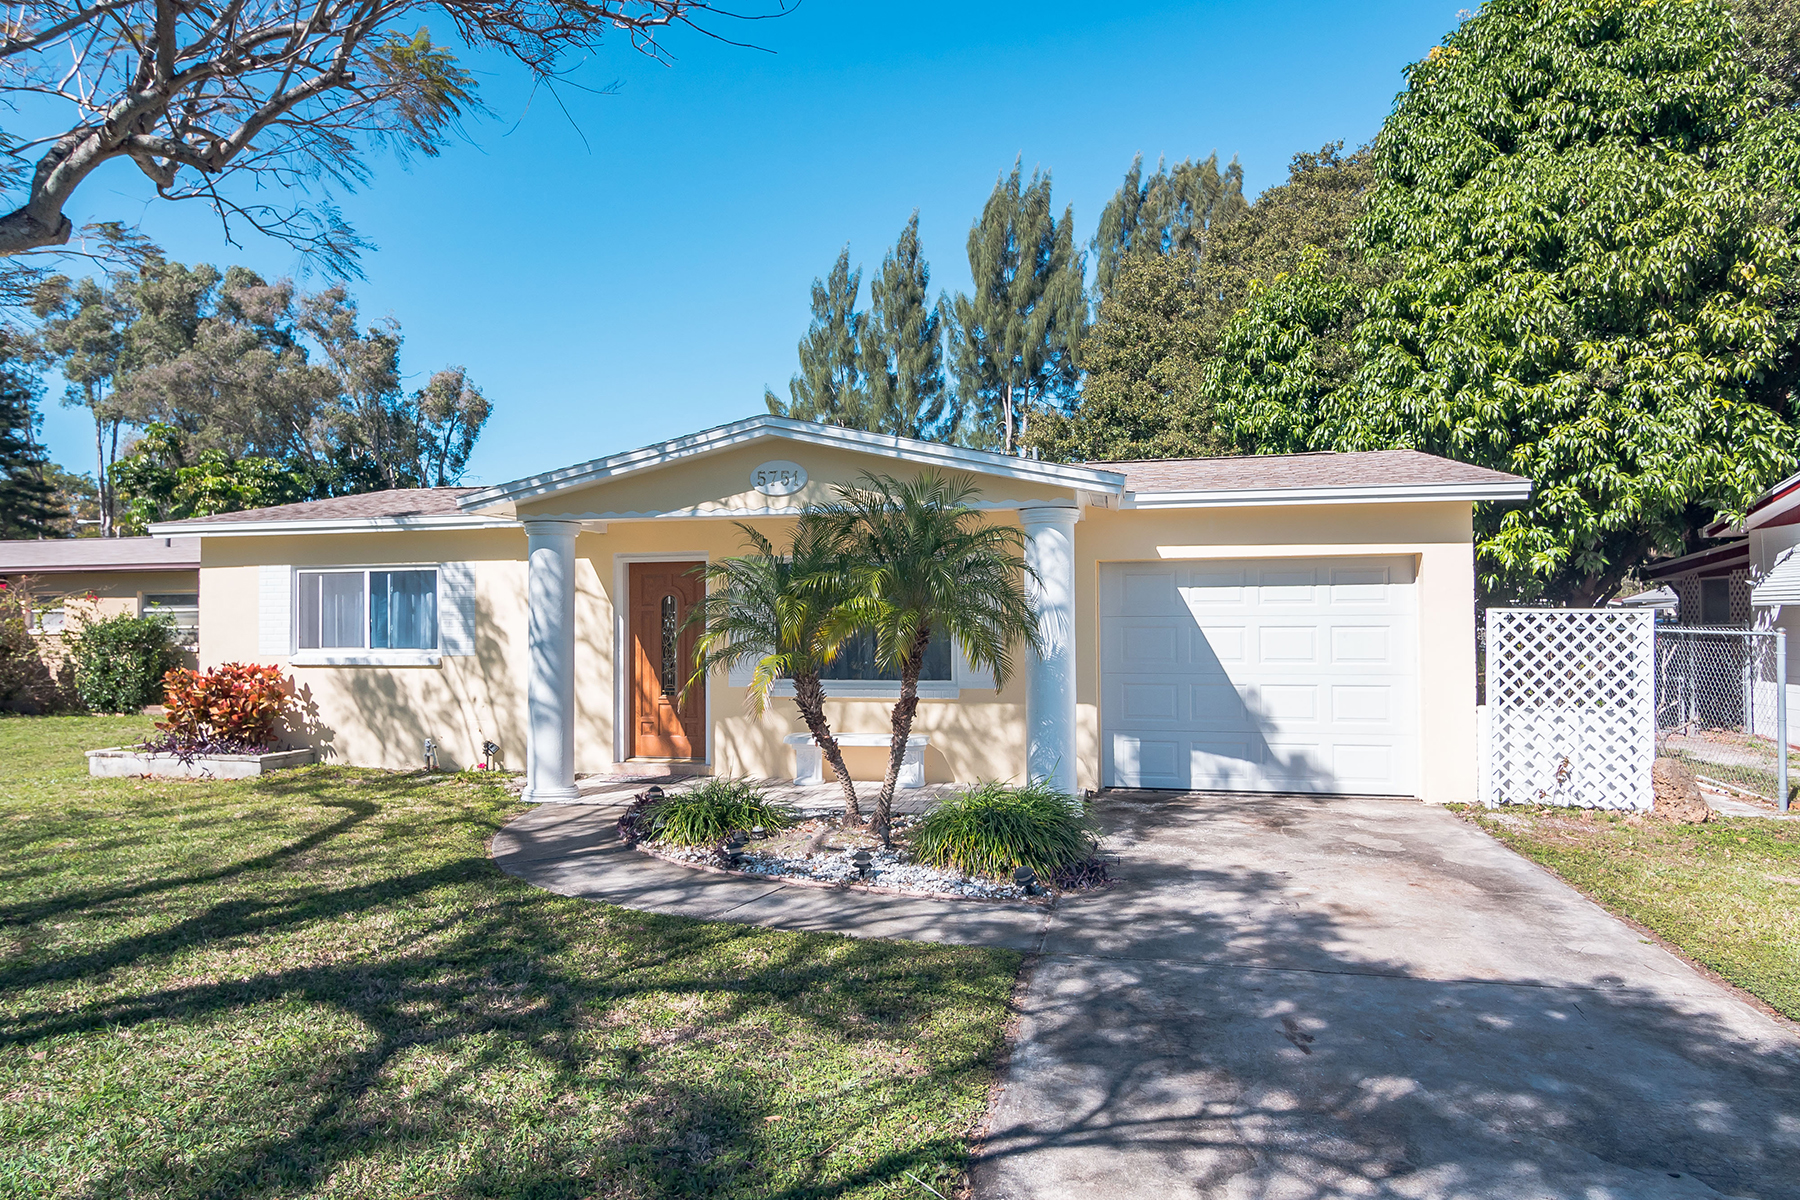 Single Family Home for Sale at ST PETERSBURG 5751 15th Ave N St. Petersburg, Florida, 33710 United States